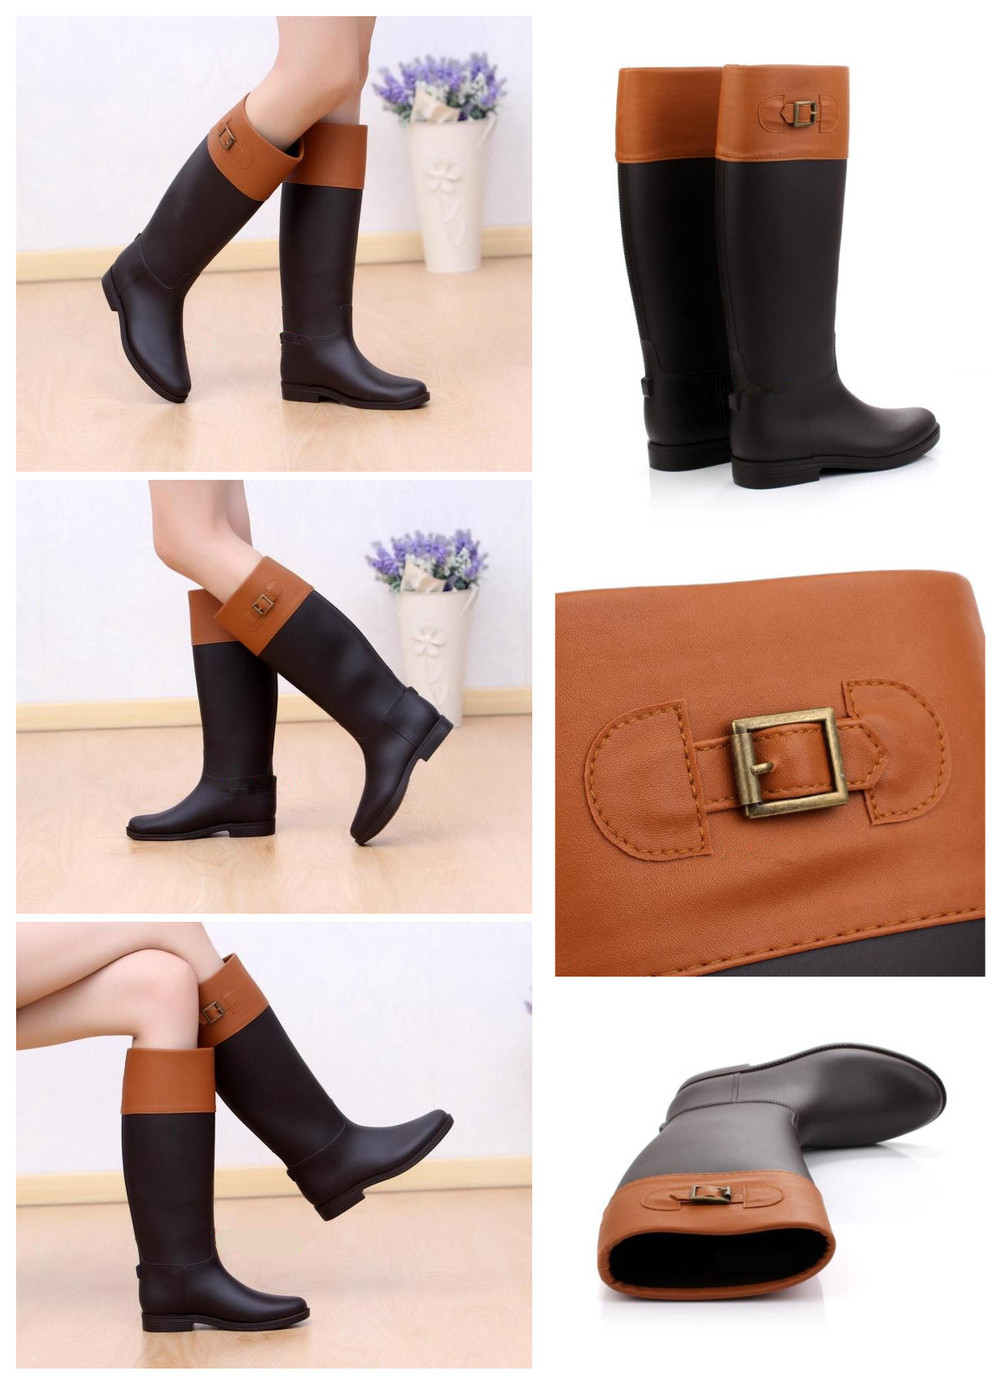 water proof gumboots High quality galoshes fashion pvc rain boots ladies